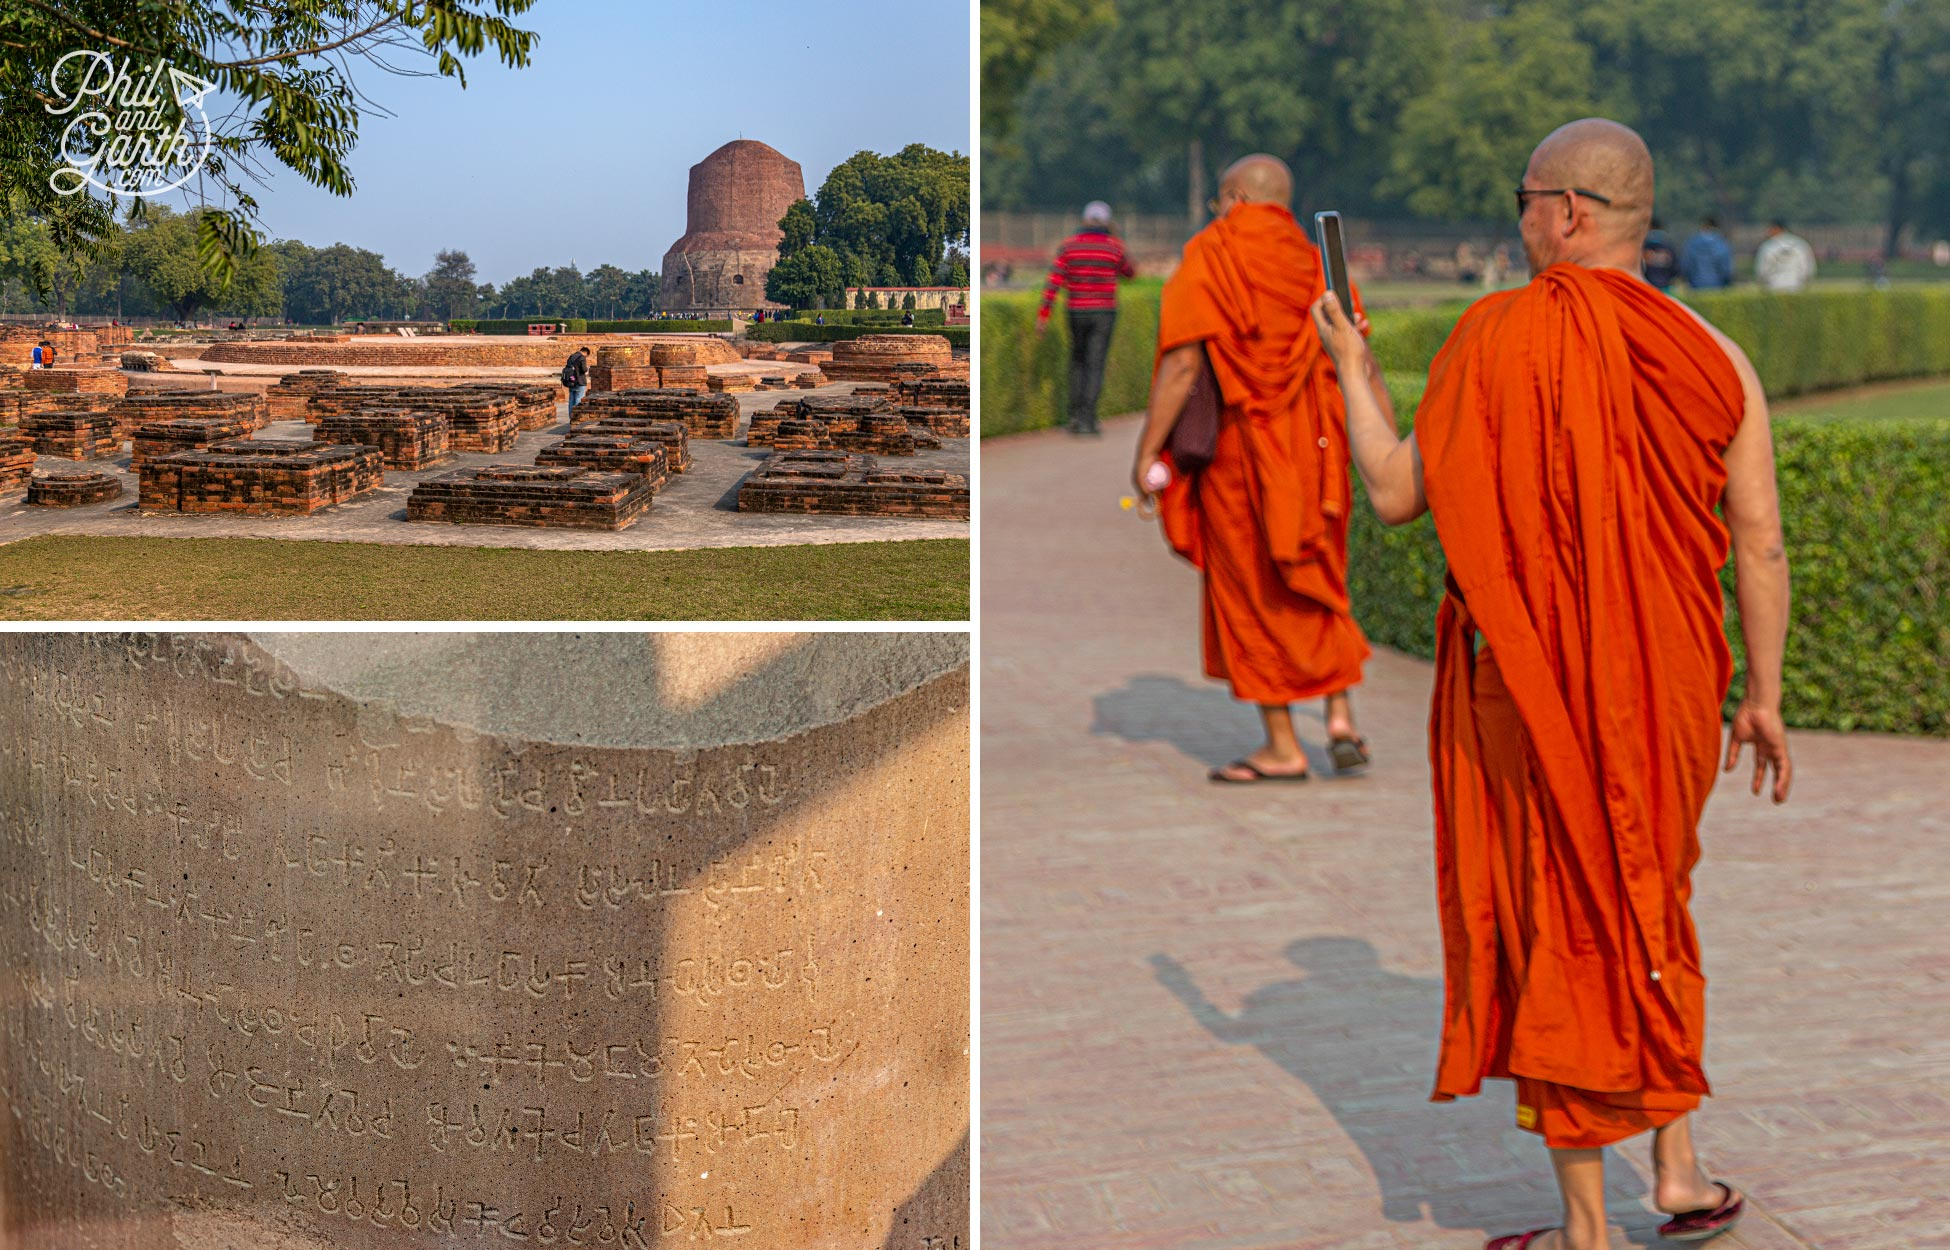 Sarnath isone the world's holiest sites for Buddhists. It's 8miles from Varanasi and takes about 40 minutes to get there